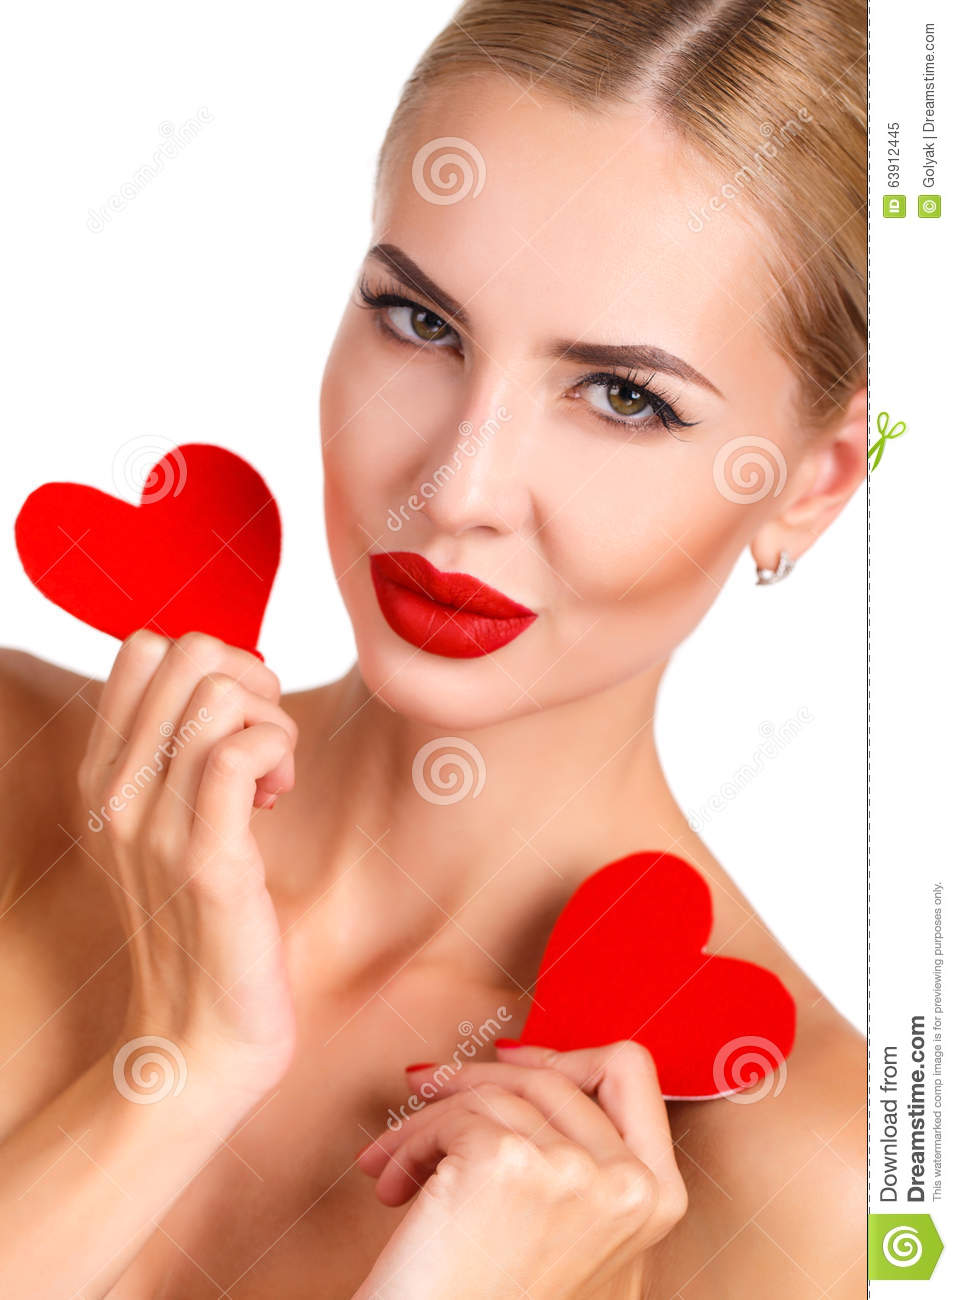 How to make beautiful and bright hearts out of clips 36